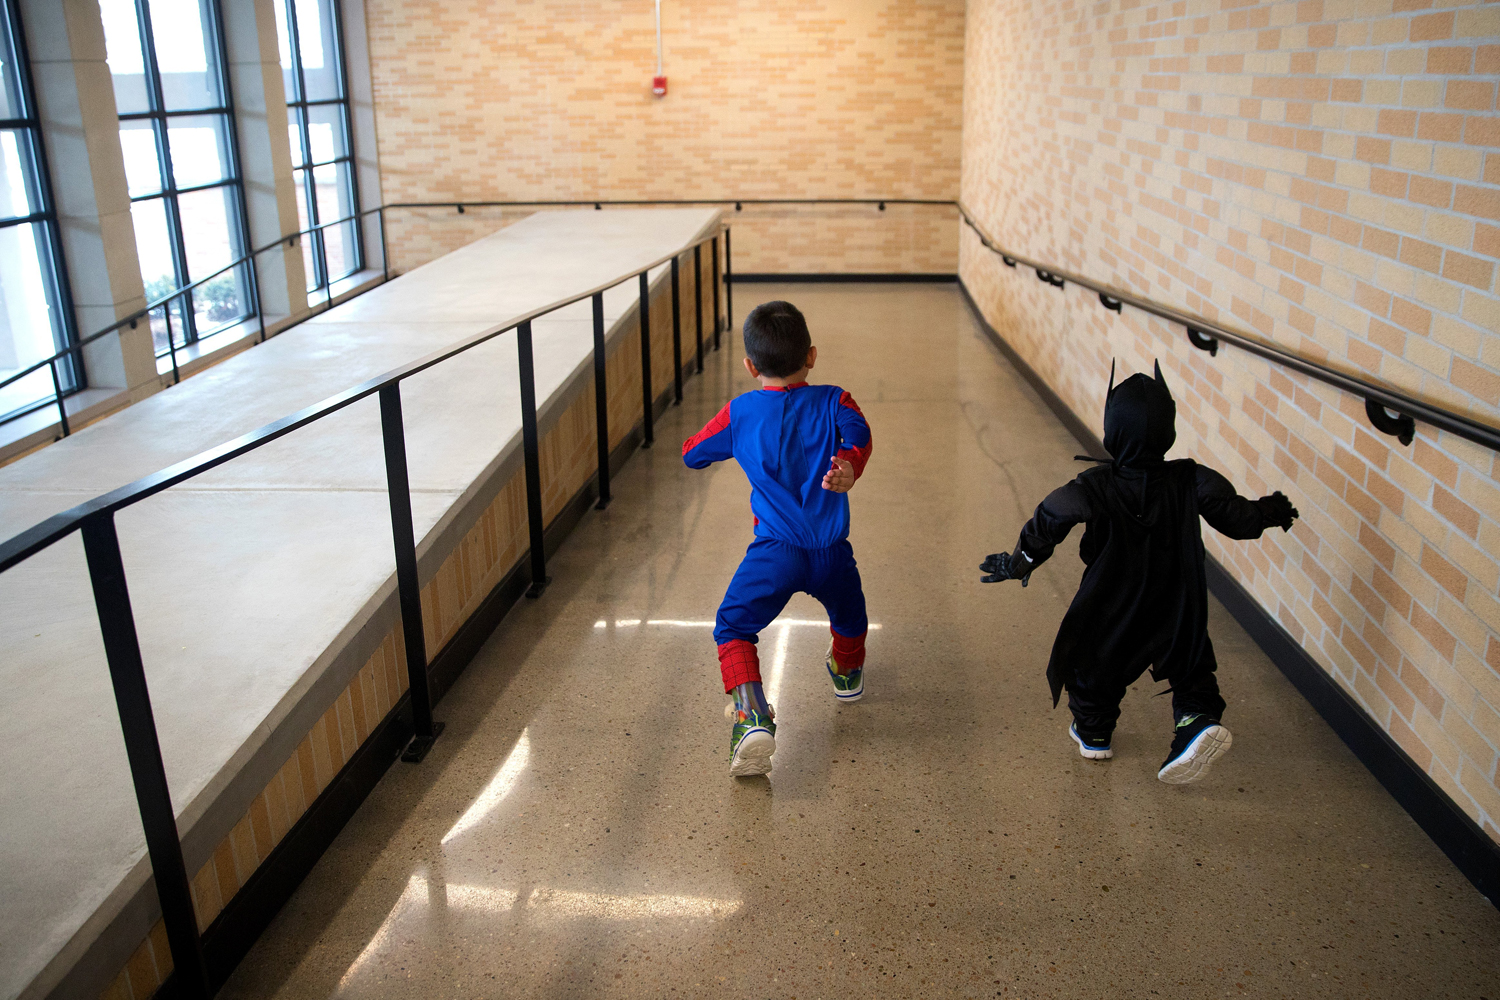 Dressed as superheroes, Arshaan, left, and Jahan play in the hallway at the Omaha Conservatory of Music before their piano lessons in January.